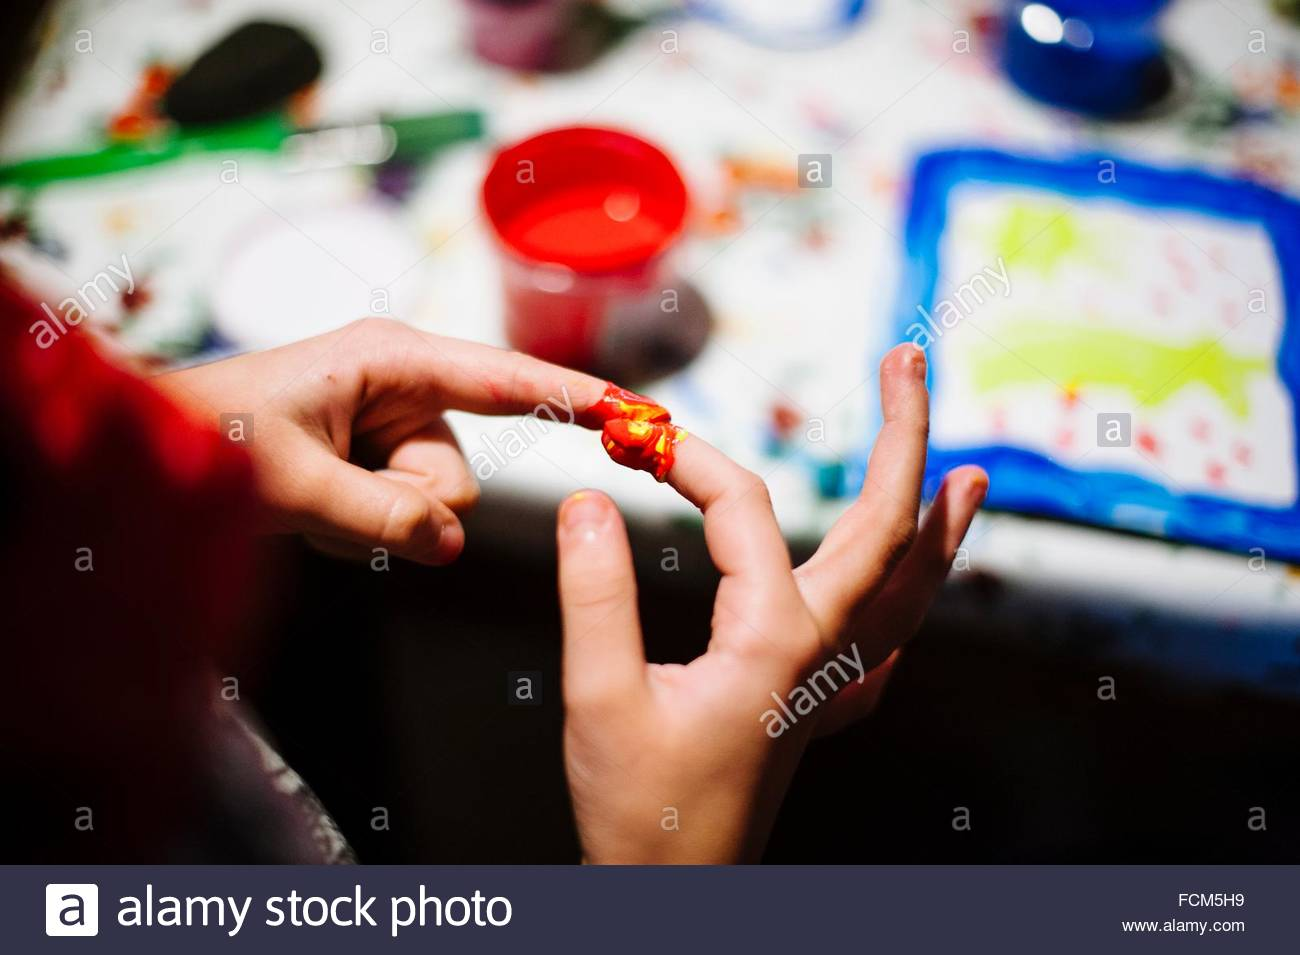 Child hands dirty with colored tempera - Stock Image